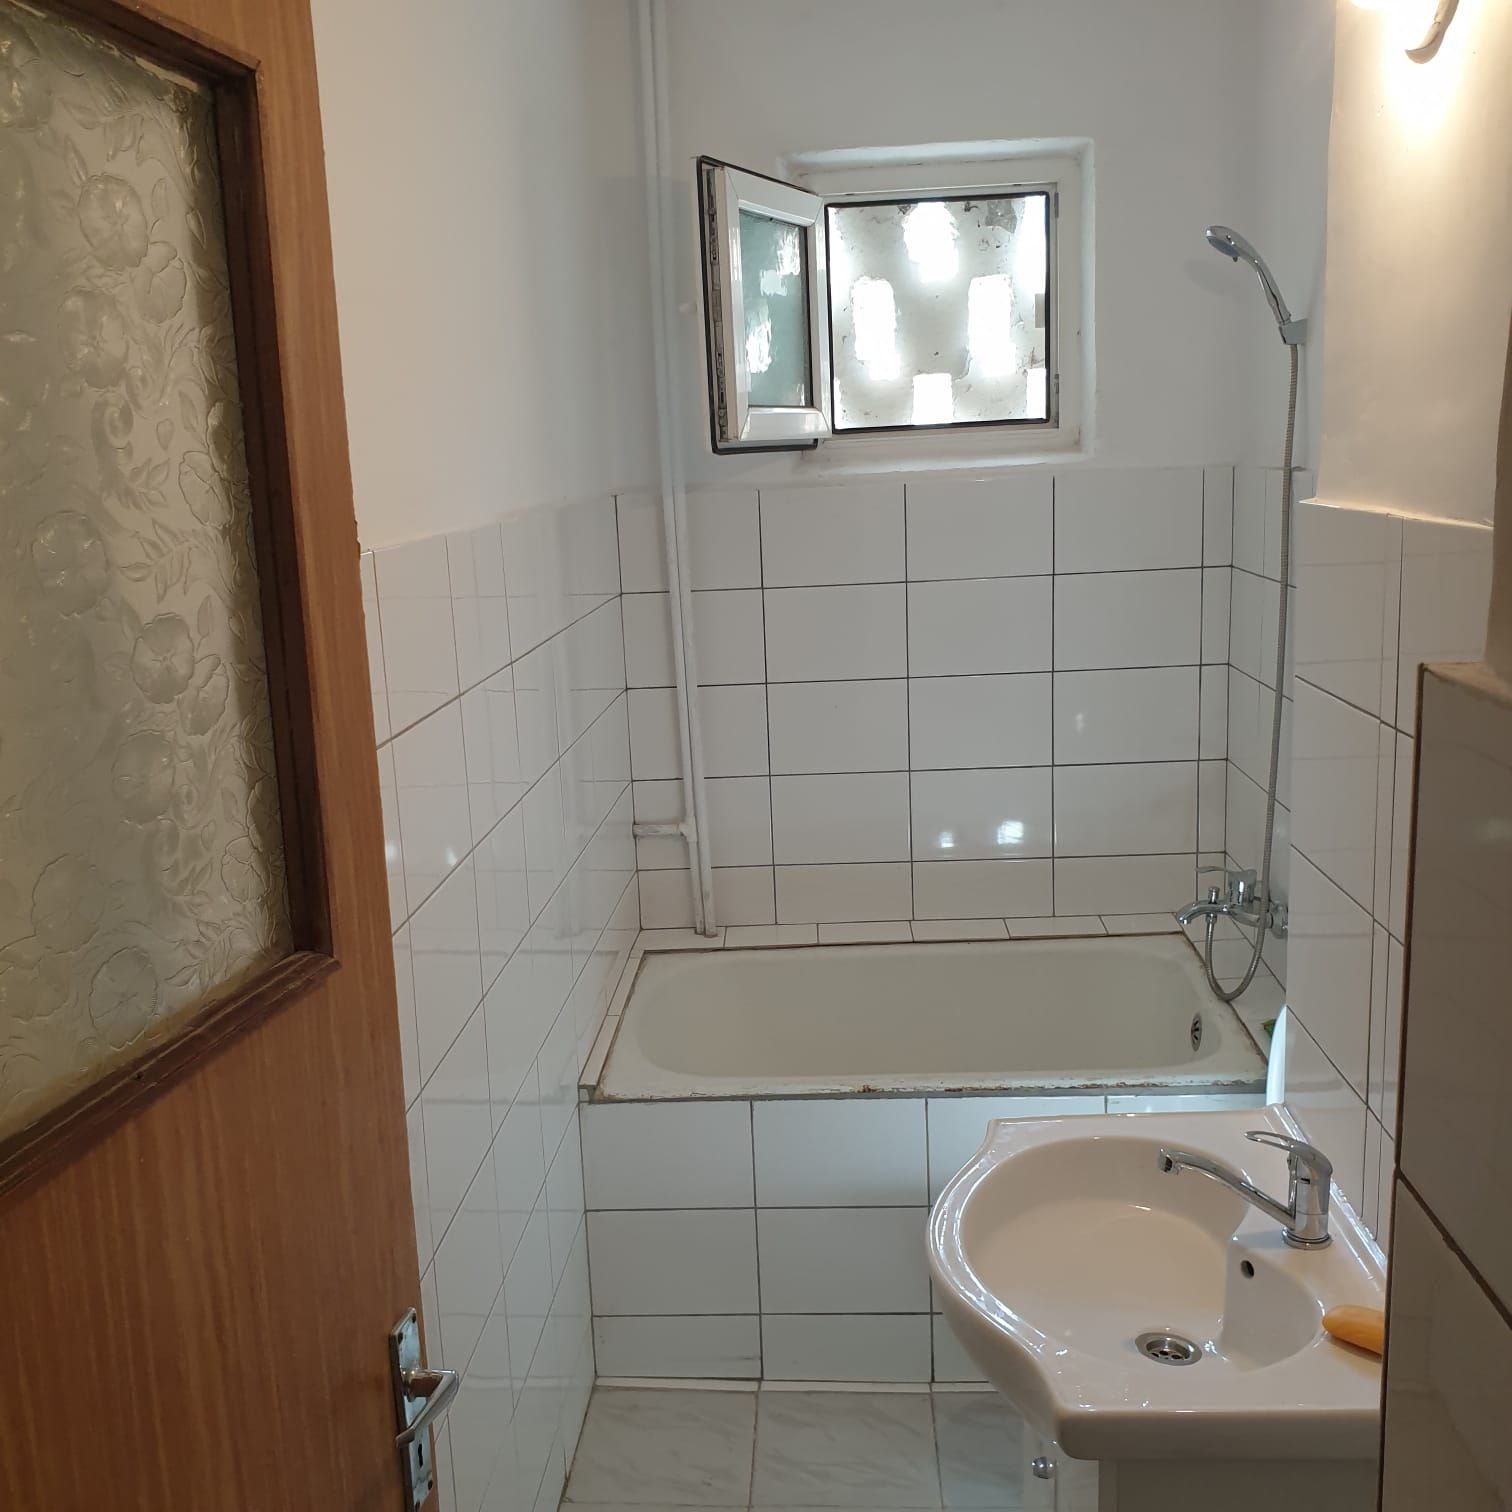 Vanzare Apartament 2 camere - CASA DE CULTURA, Constanta